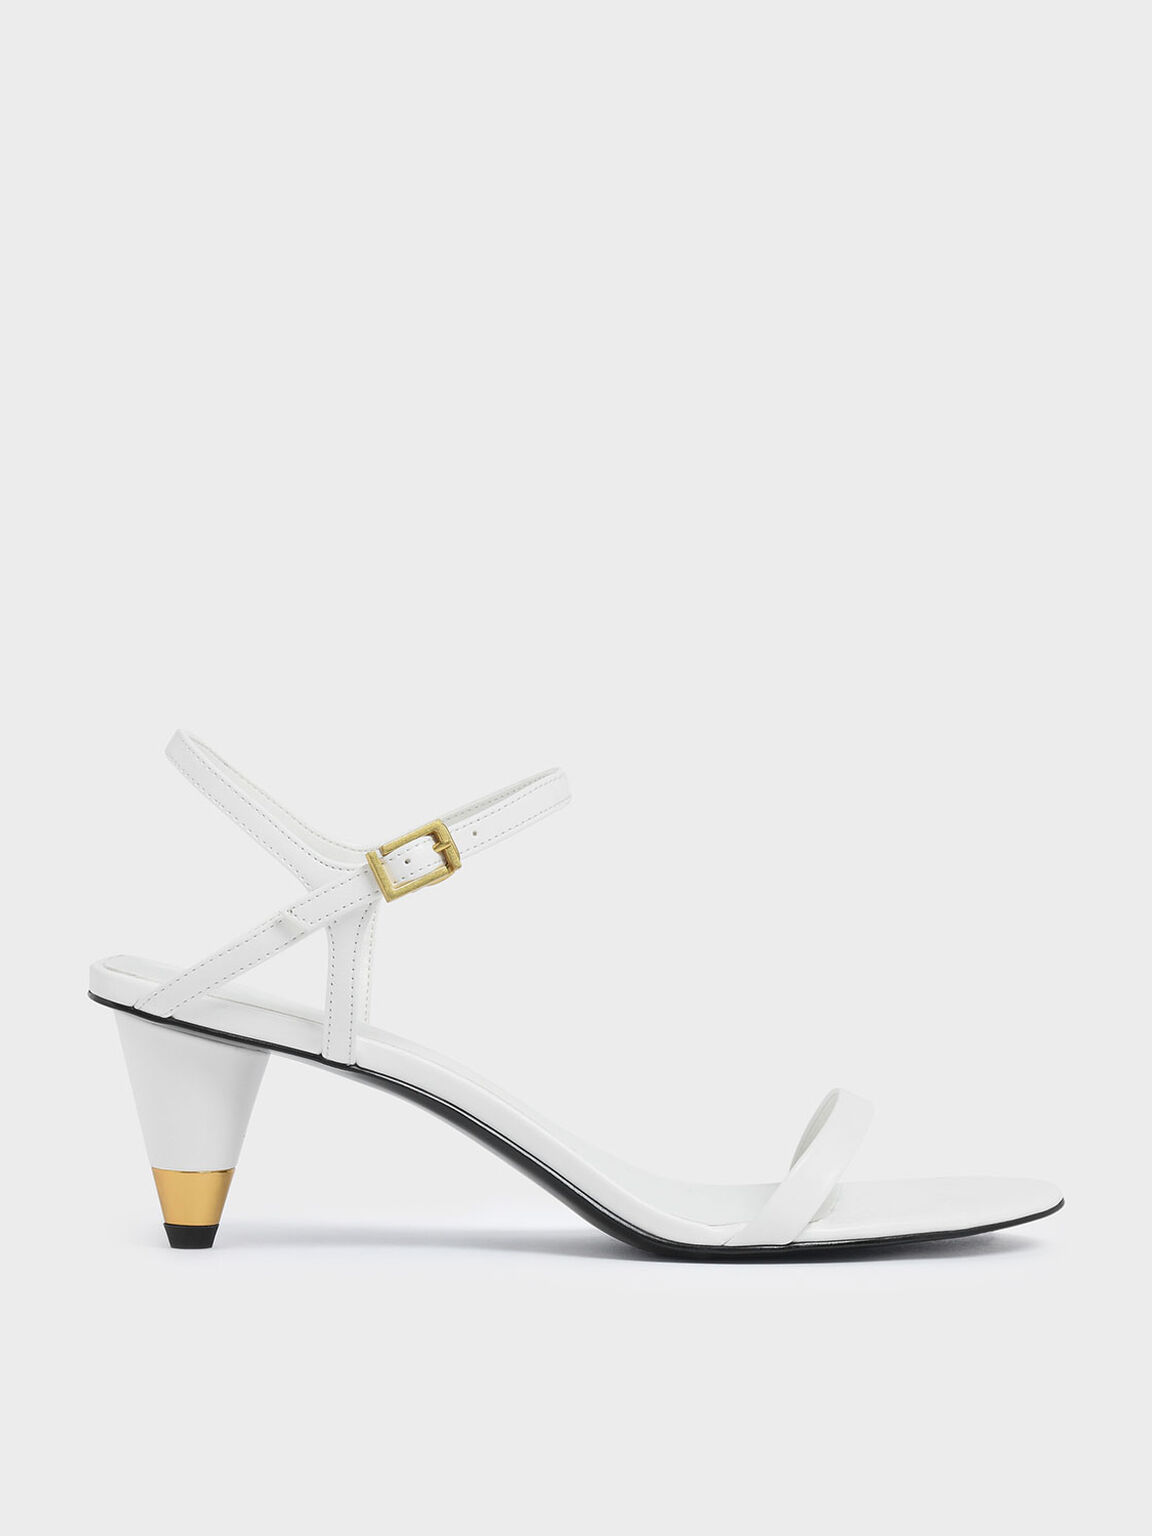 Gold Accent Cone Heel Sandals, White, hi-res